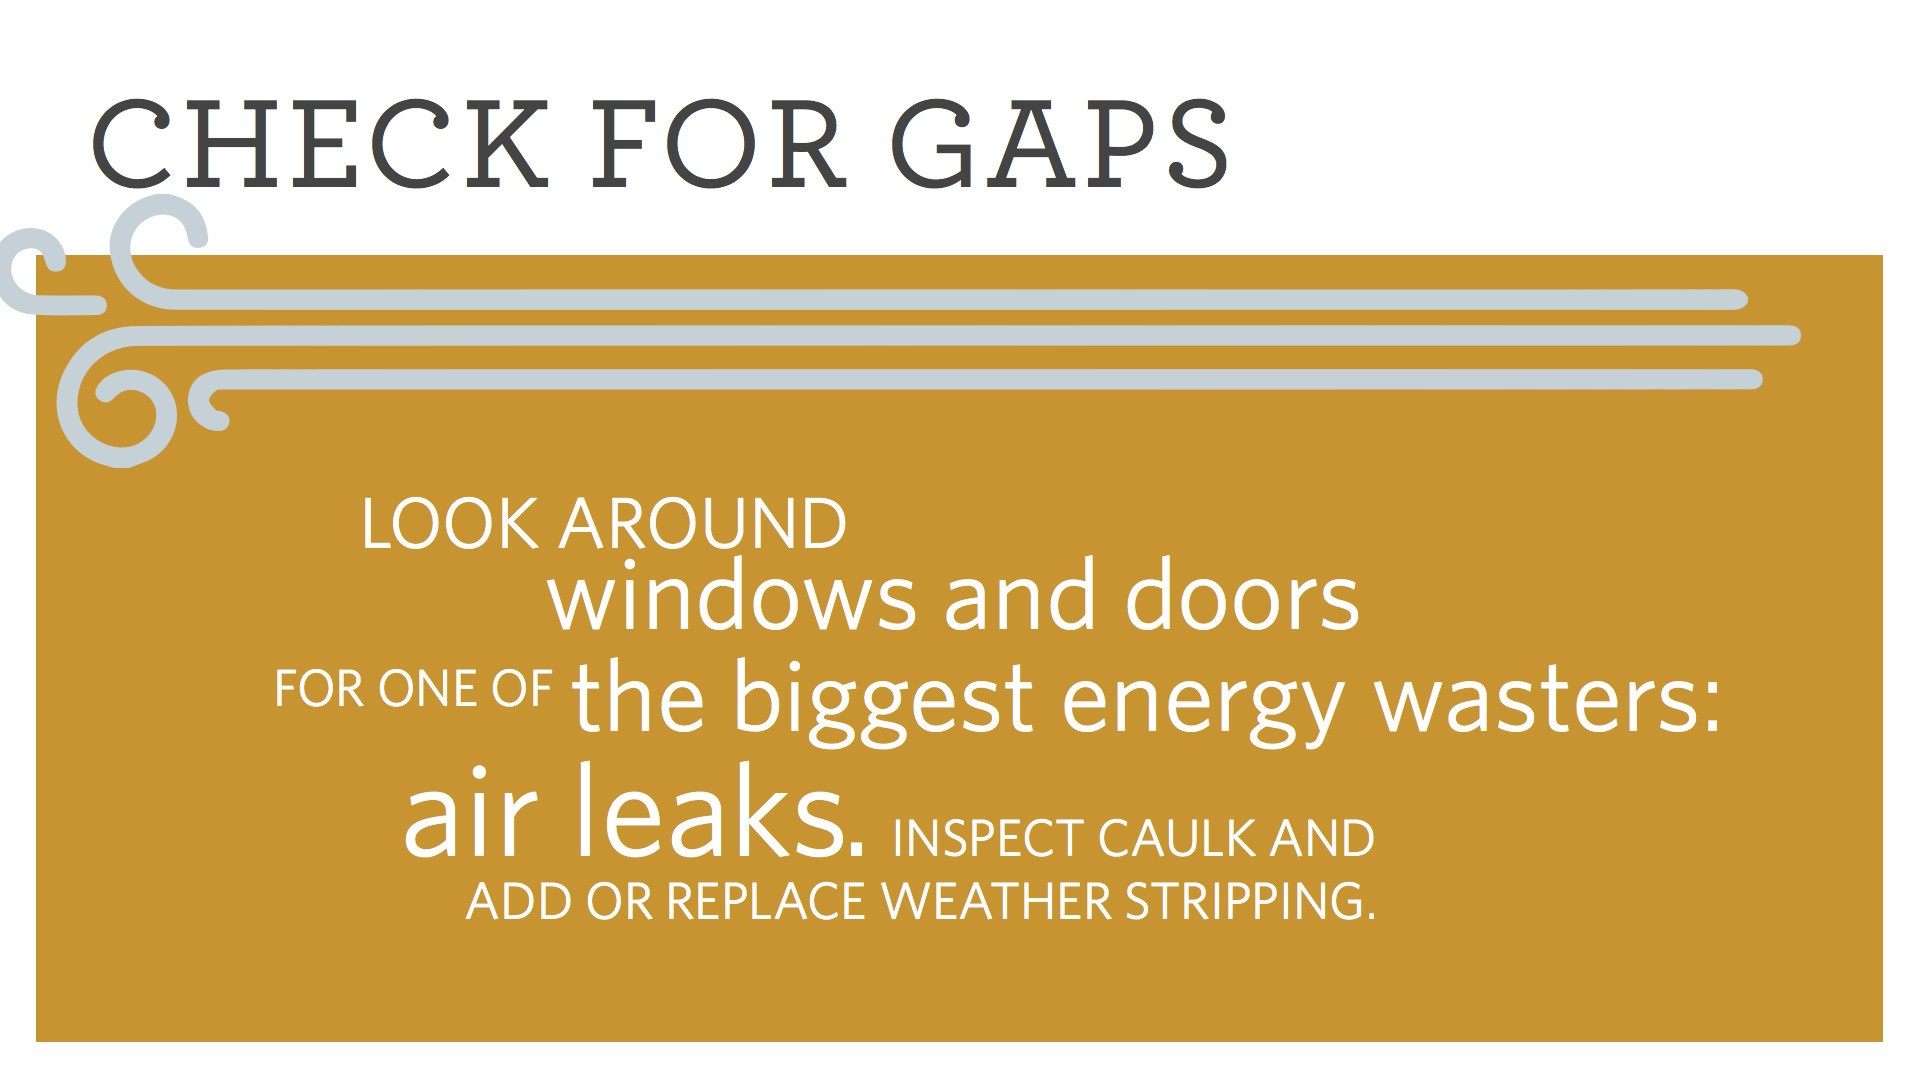 Check for gaps